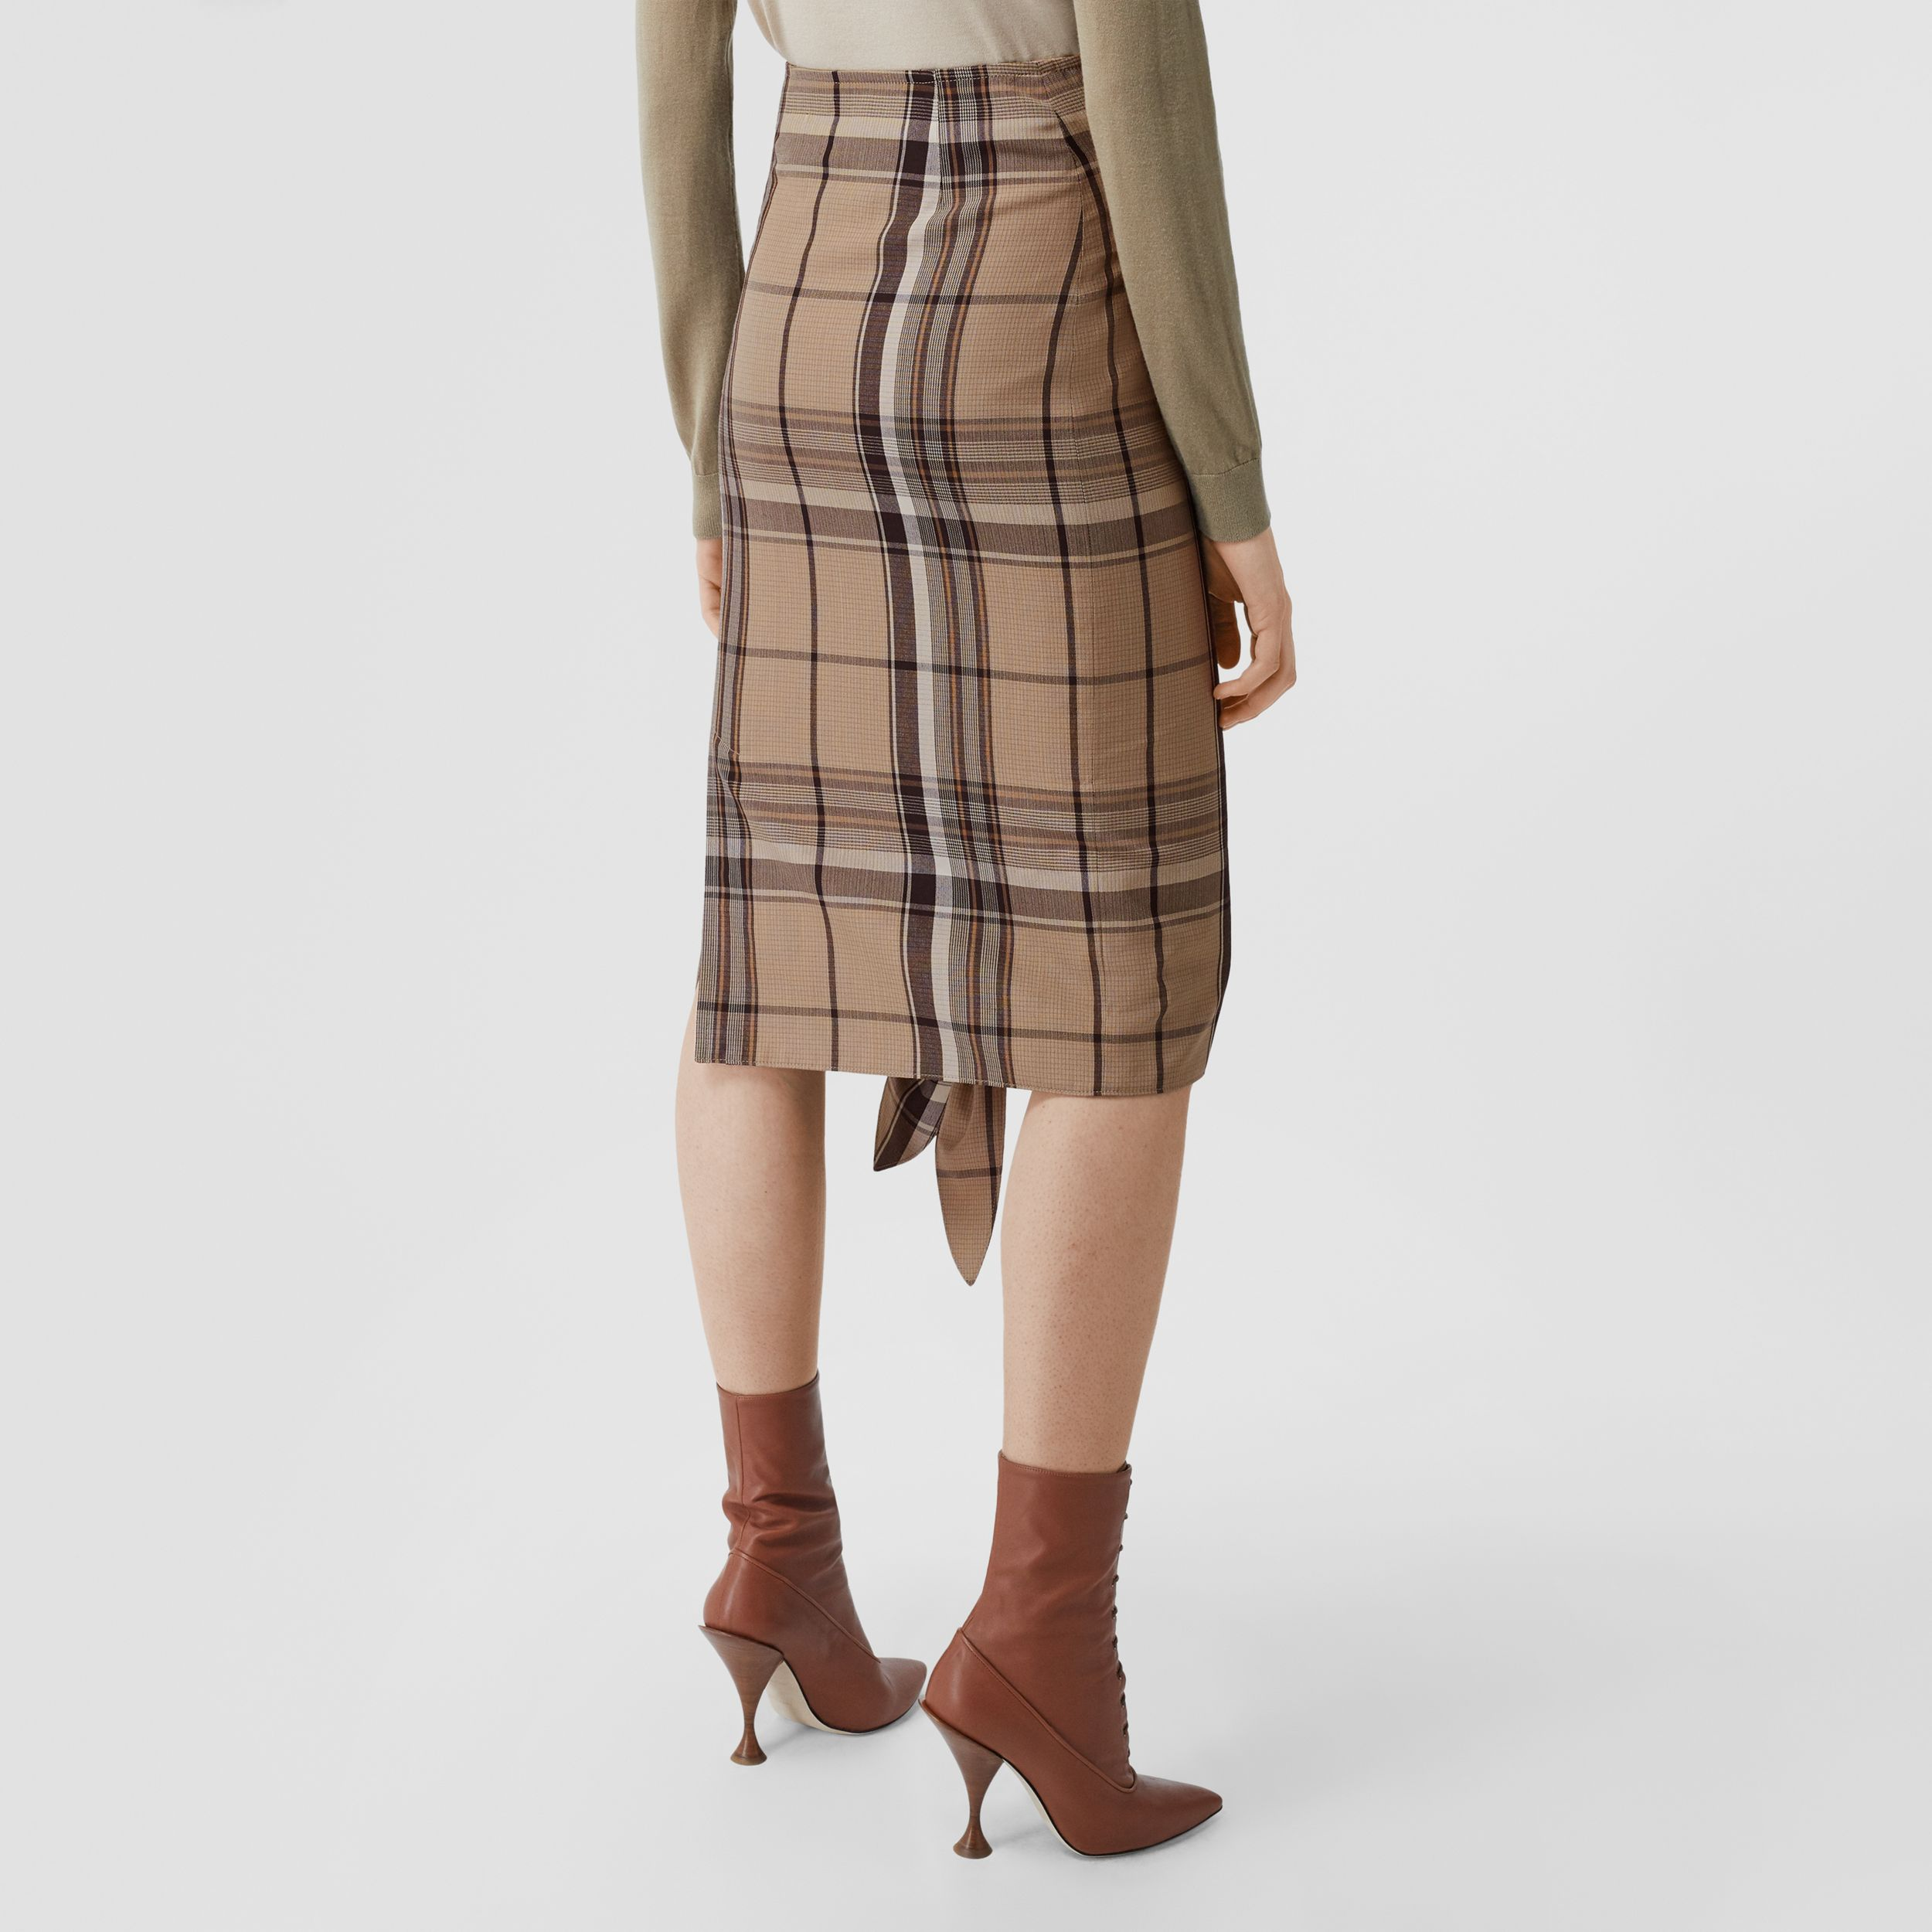 Knot Detail Check Wool Pencil Skirt in Driftwood - Women | Burberry - 3